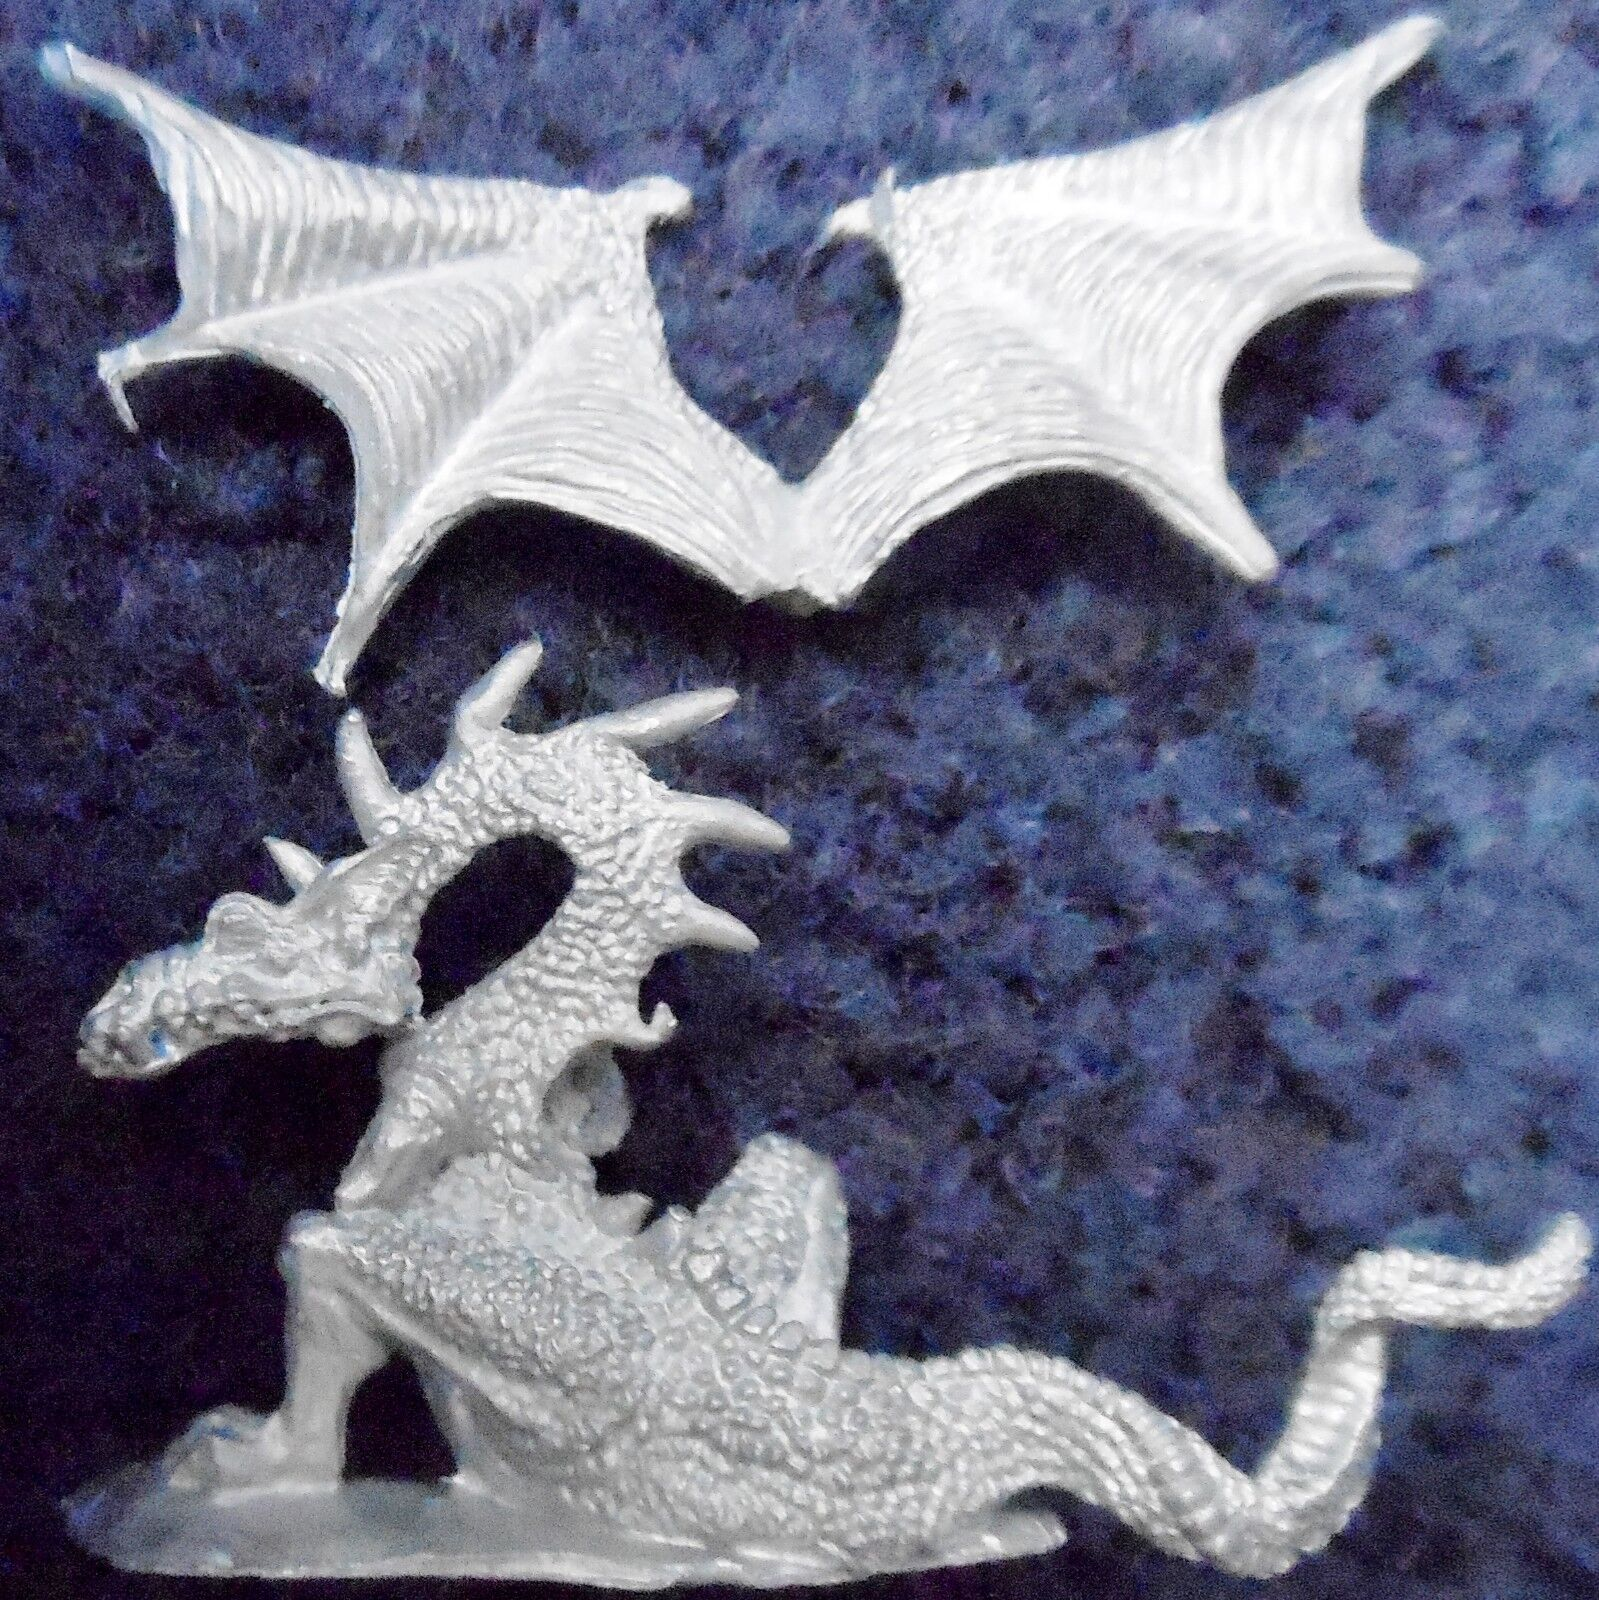 1985 C29 Young Spined Cave Wyrm Dungeons & Dragons Games Workshop Citadel Baby